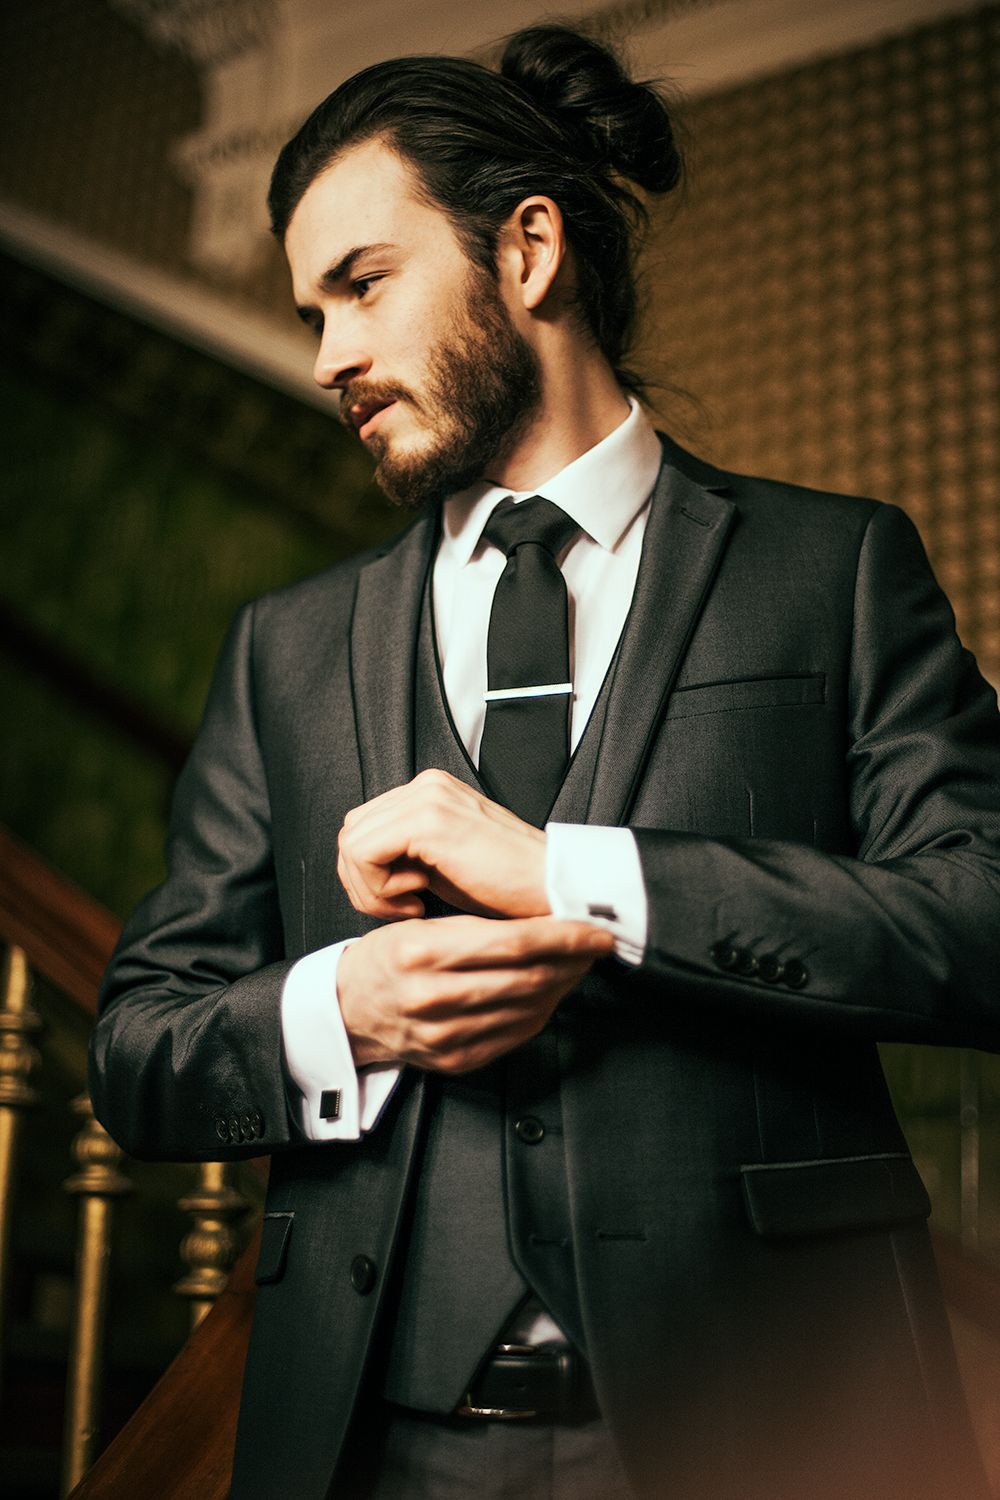 Image result for suit jacket long hair long hair styles